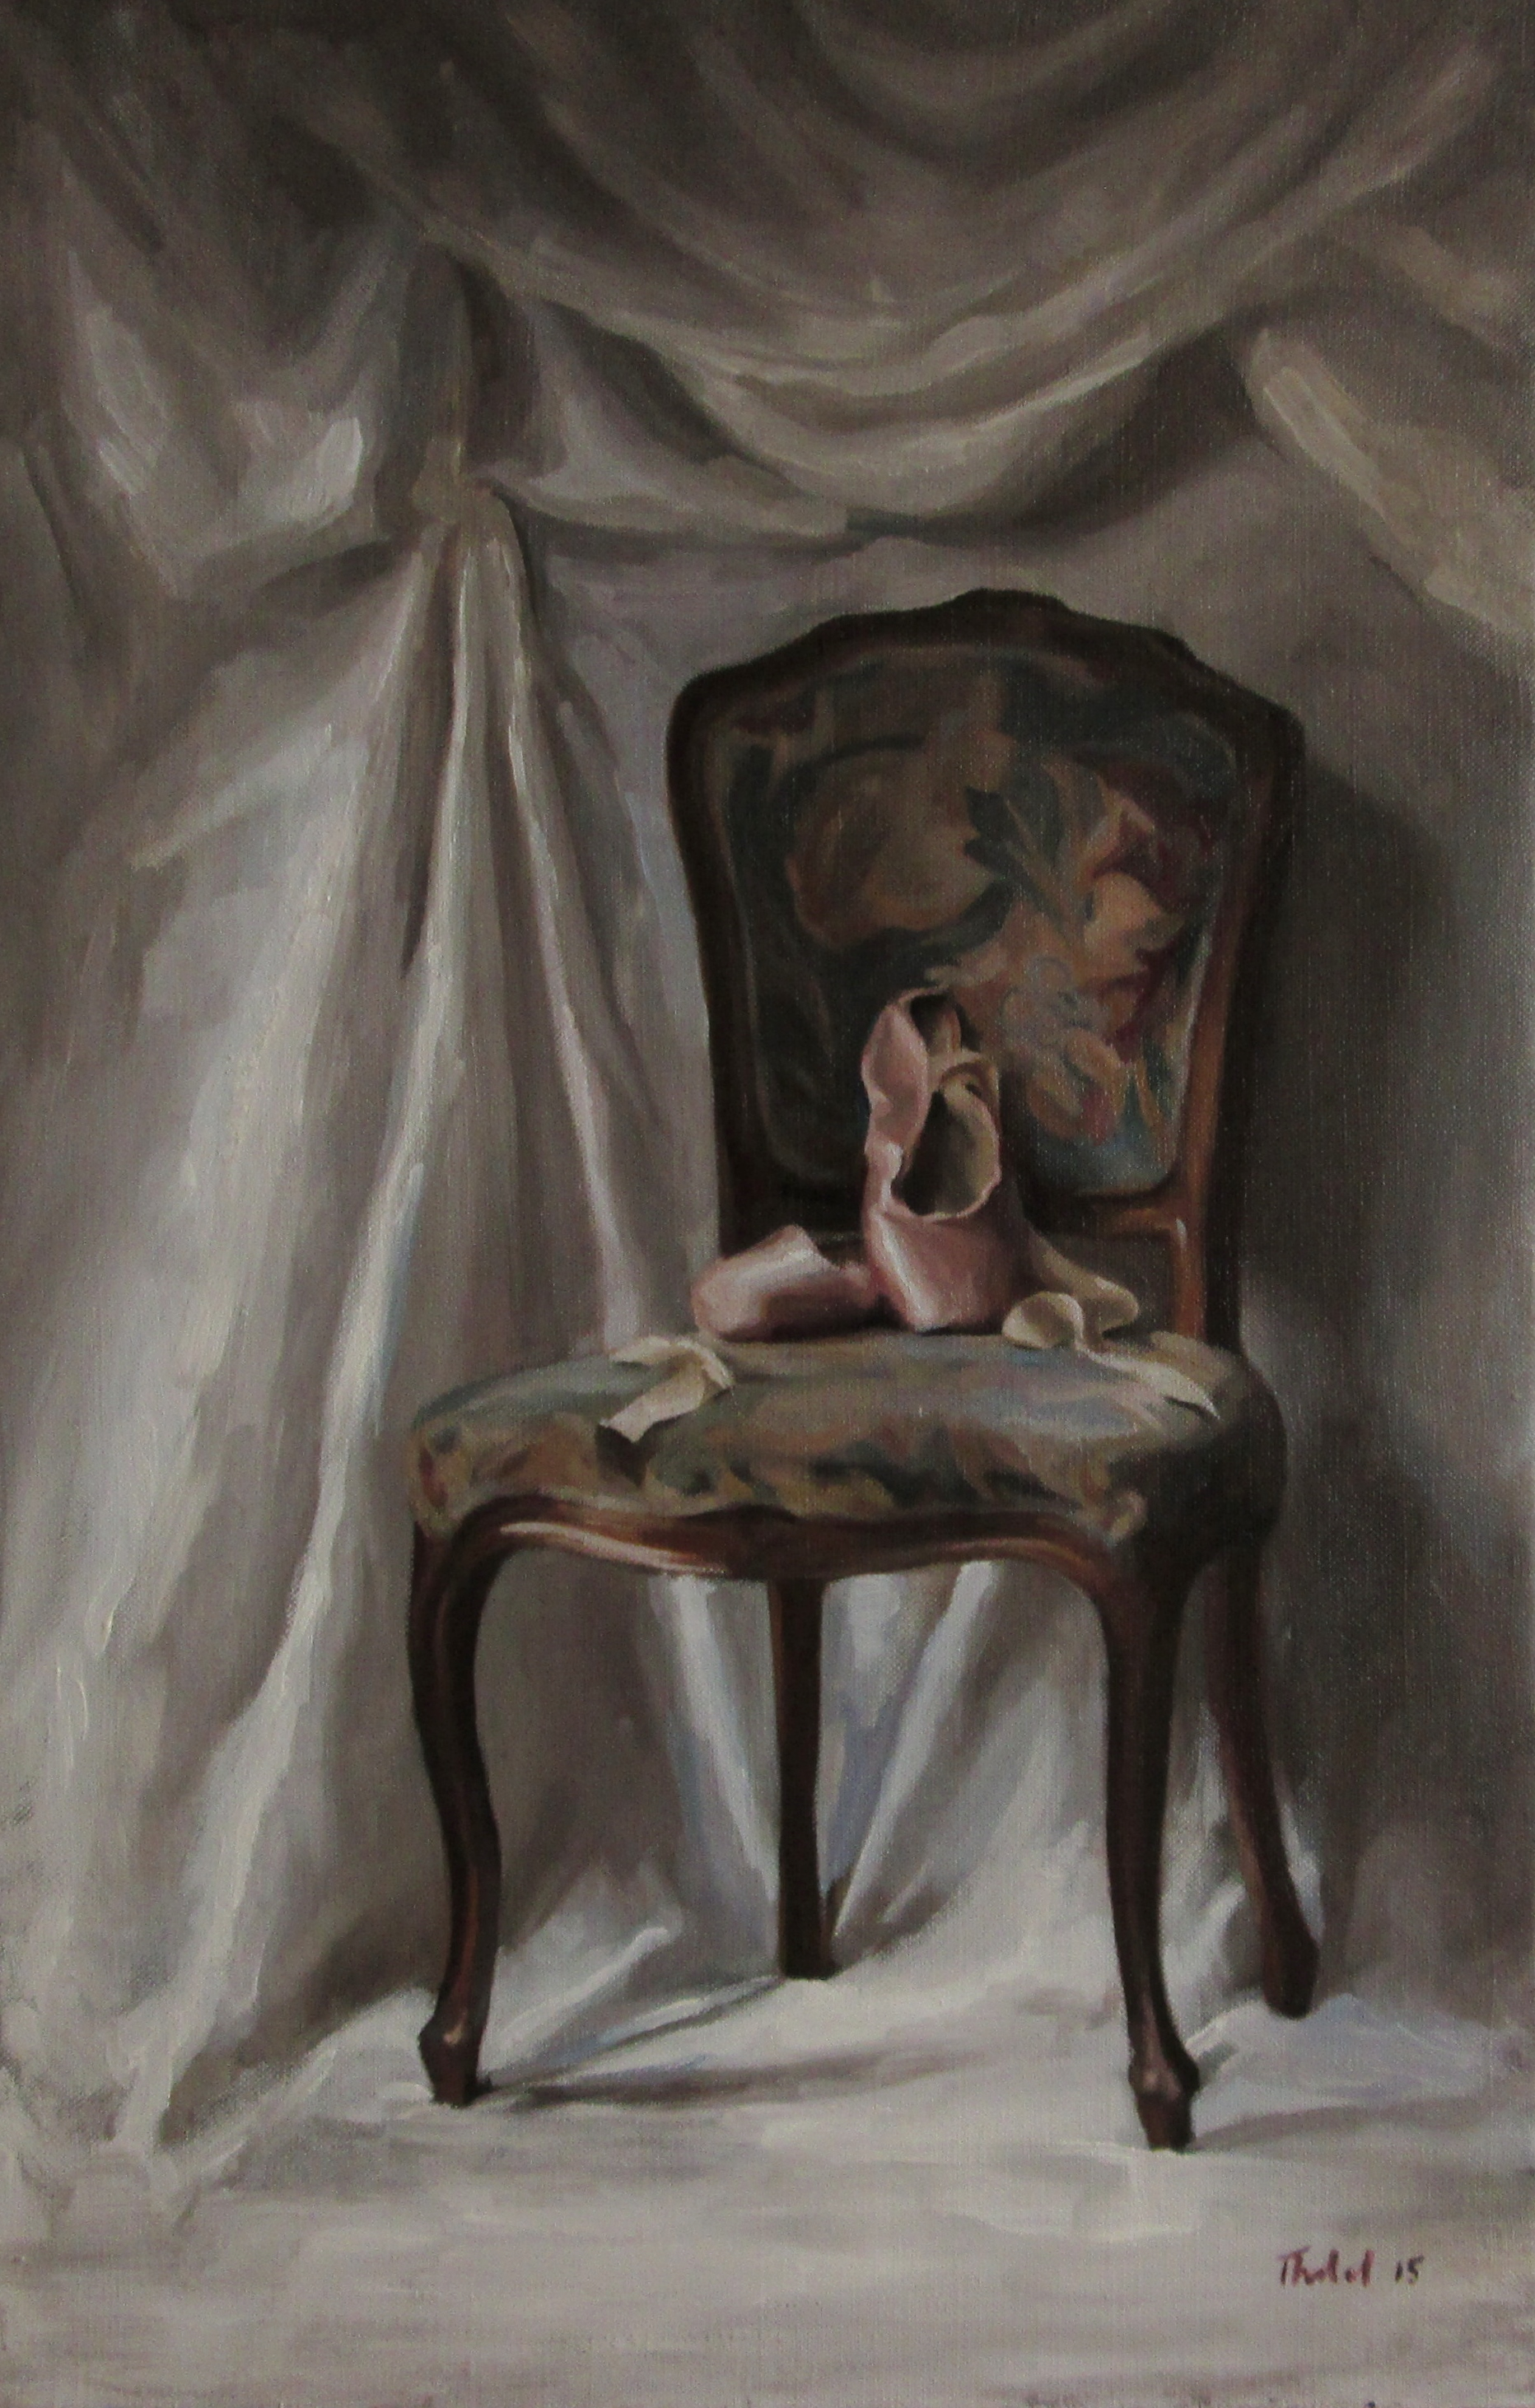 INTERIOR WITH BALLET SLIPPERS (sold)